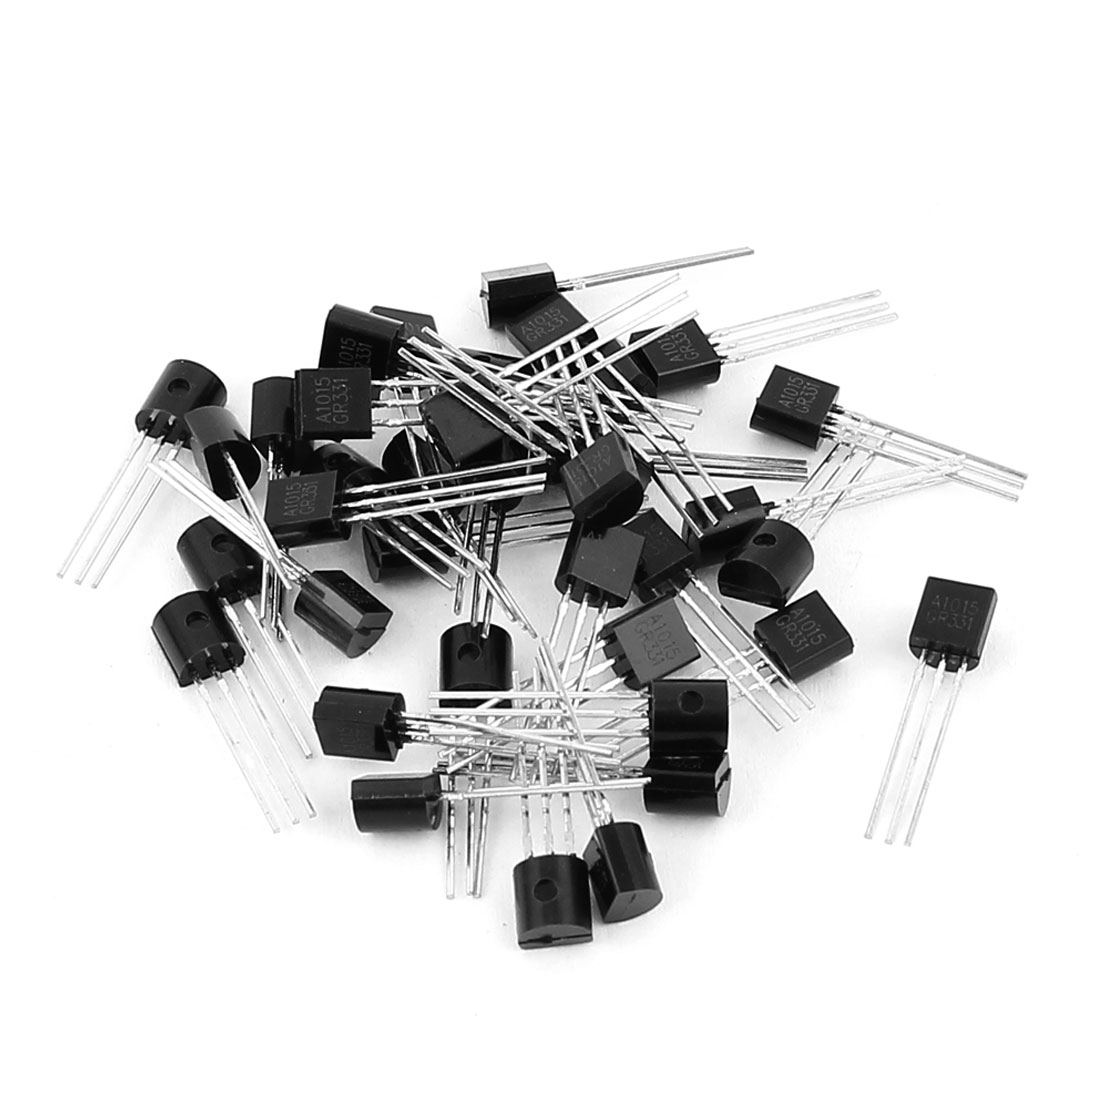 40 Pcs A1015 TO-92 PNP Bipolar Low Power Junction Transistors 50V 0.15A